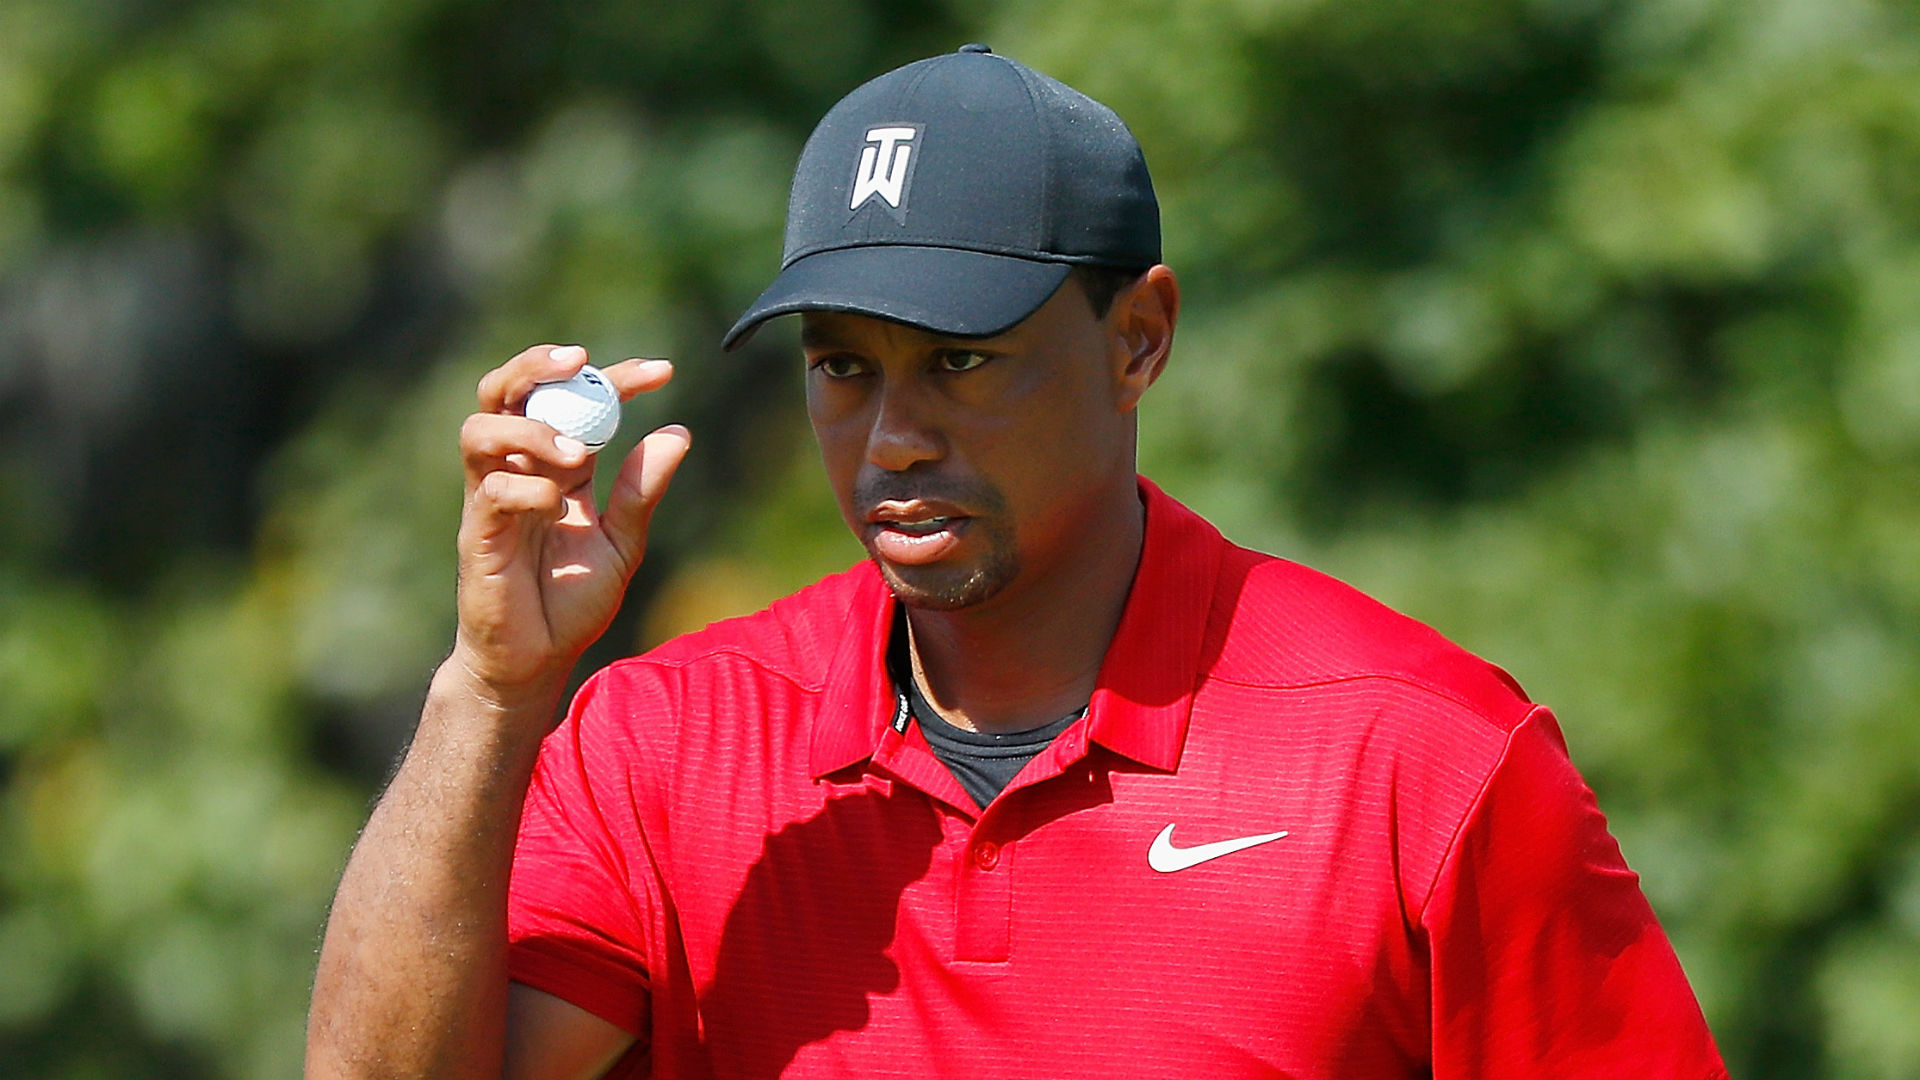 Tiger Woods Just Won His First PGA Tour Event Since 2013